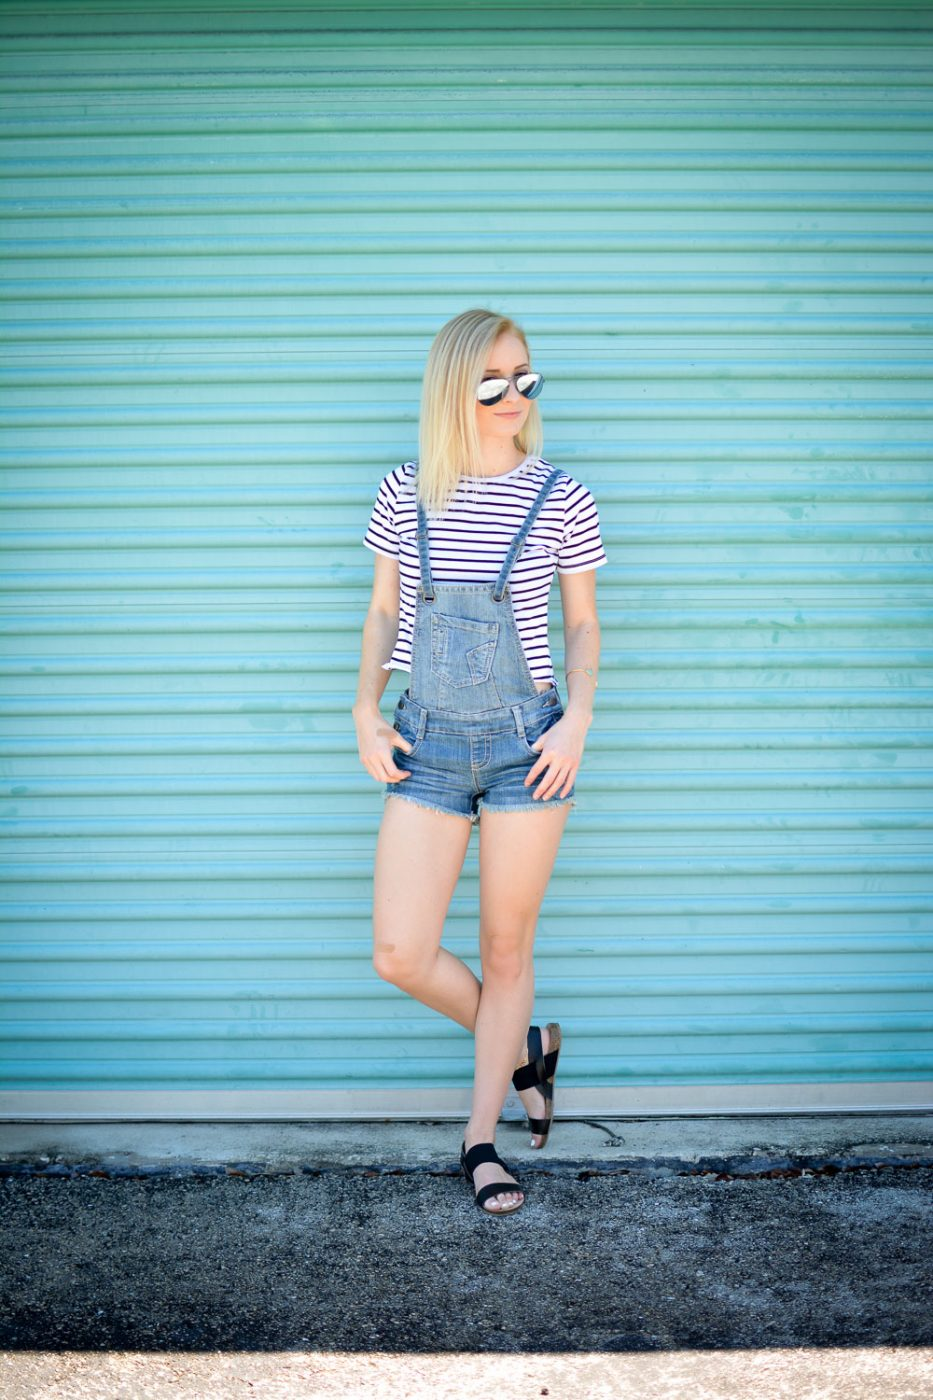 Overalls and a striped shirt